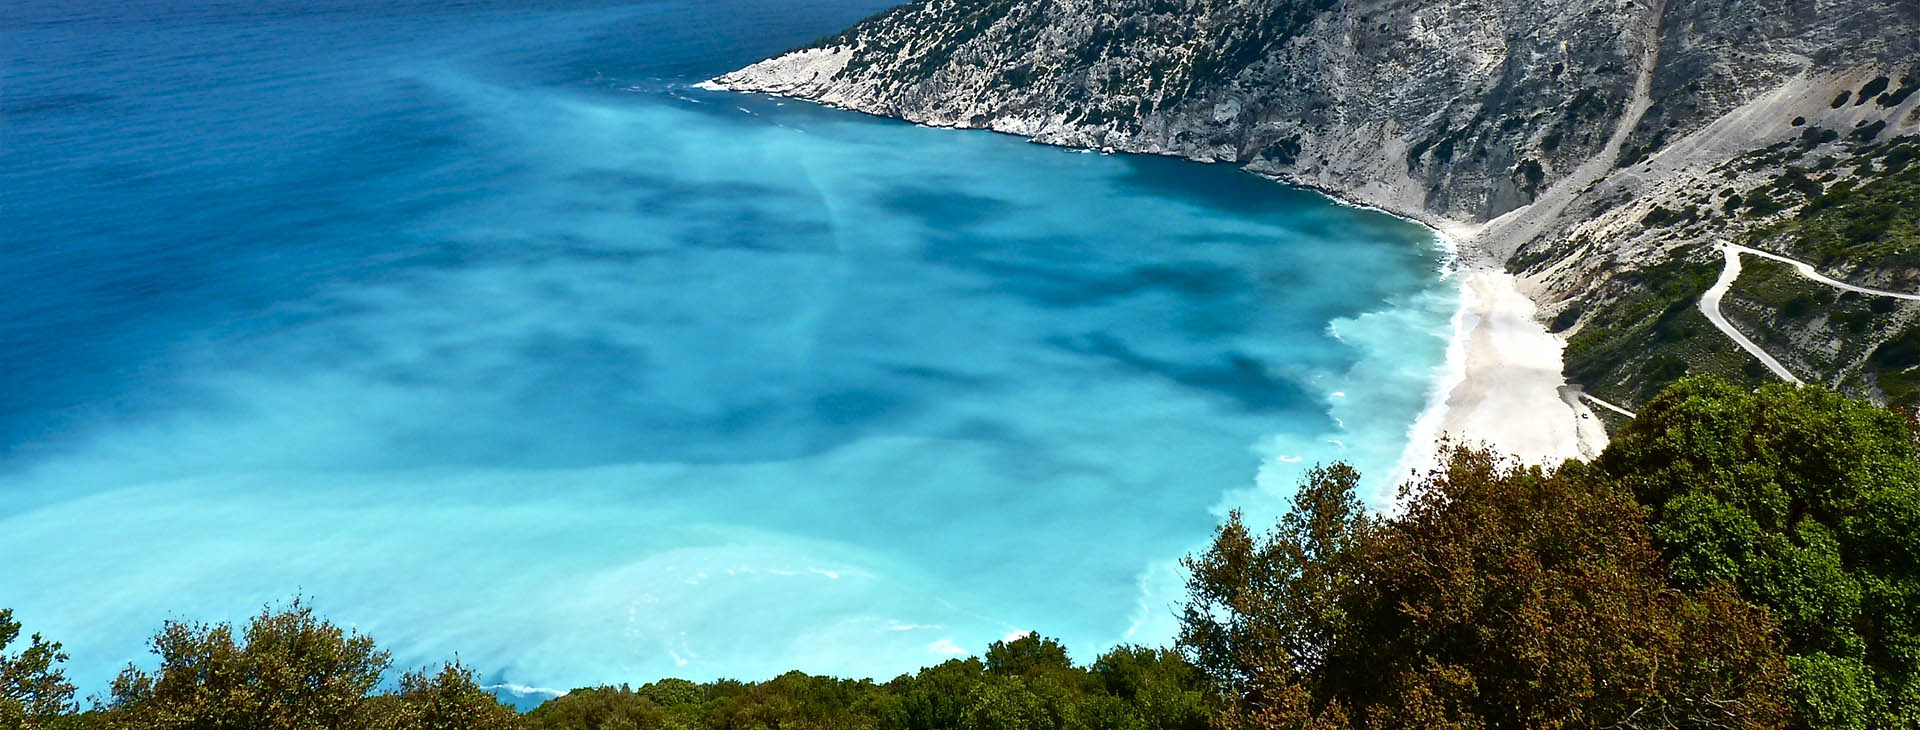 Myrtos beach on Kefalonia island